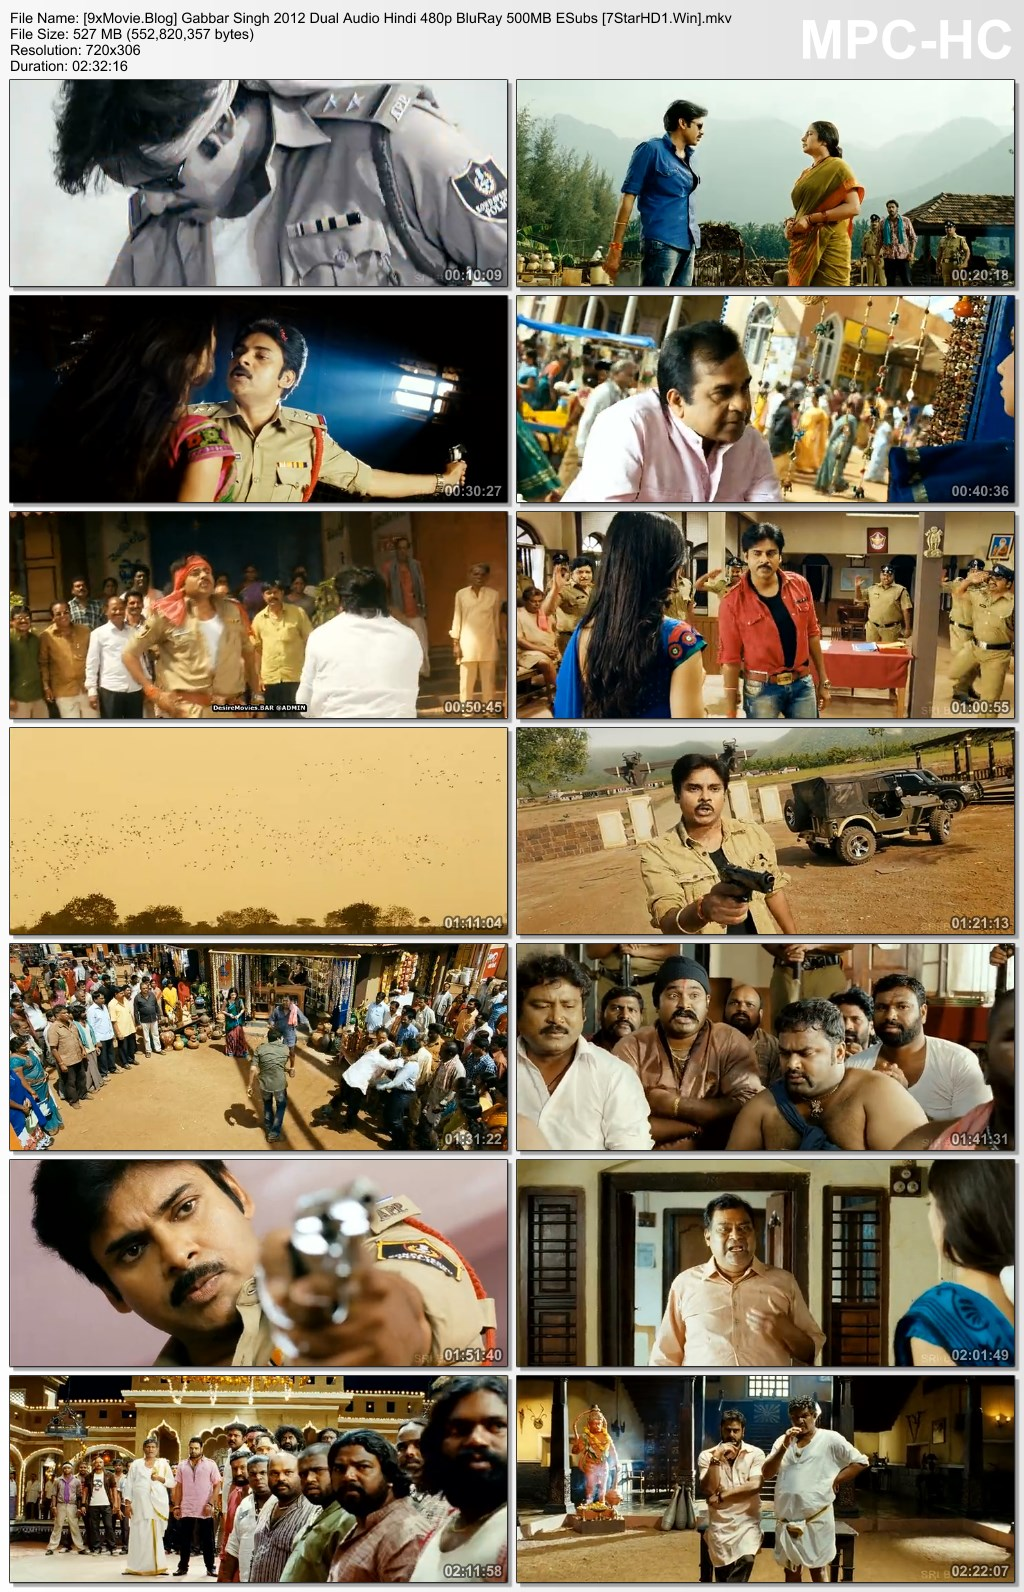 Gabbar Singh 2012 Dual Audio Hindi 480p BluRay x264 500MB ESubs